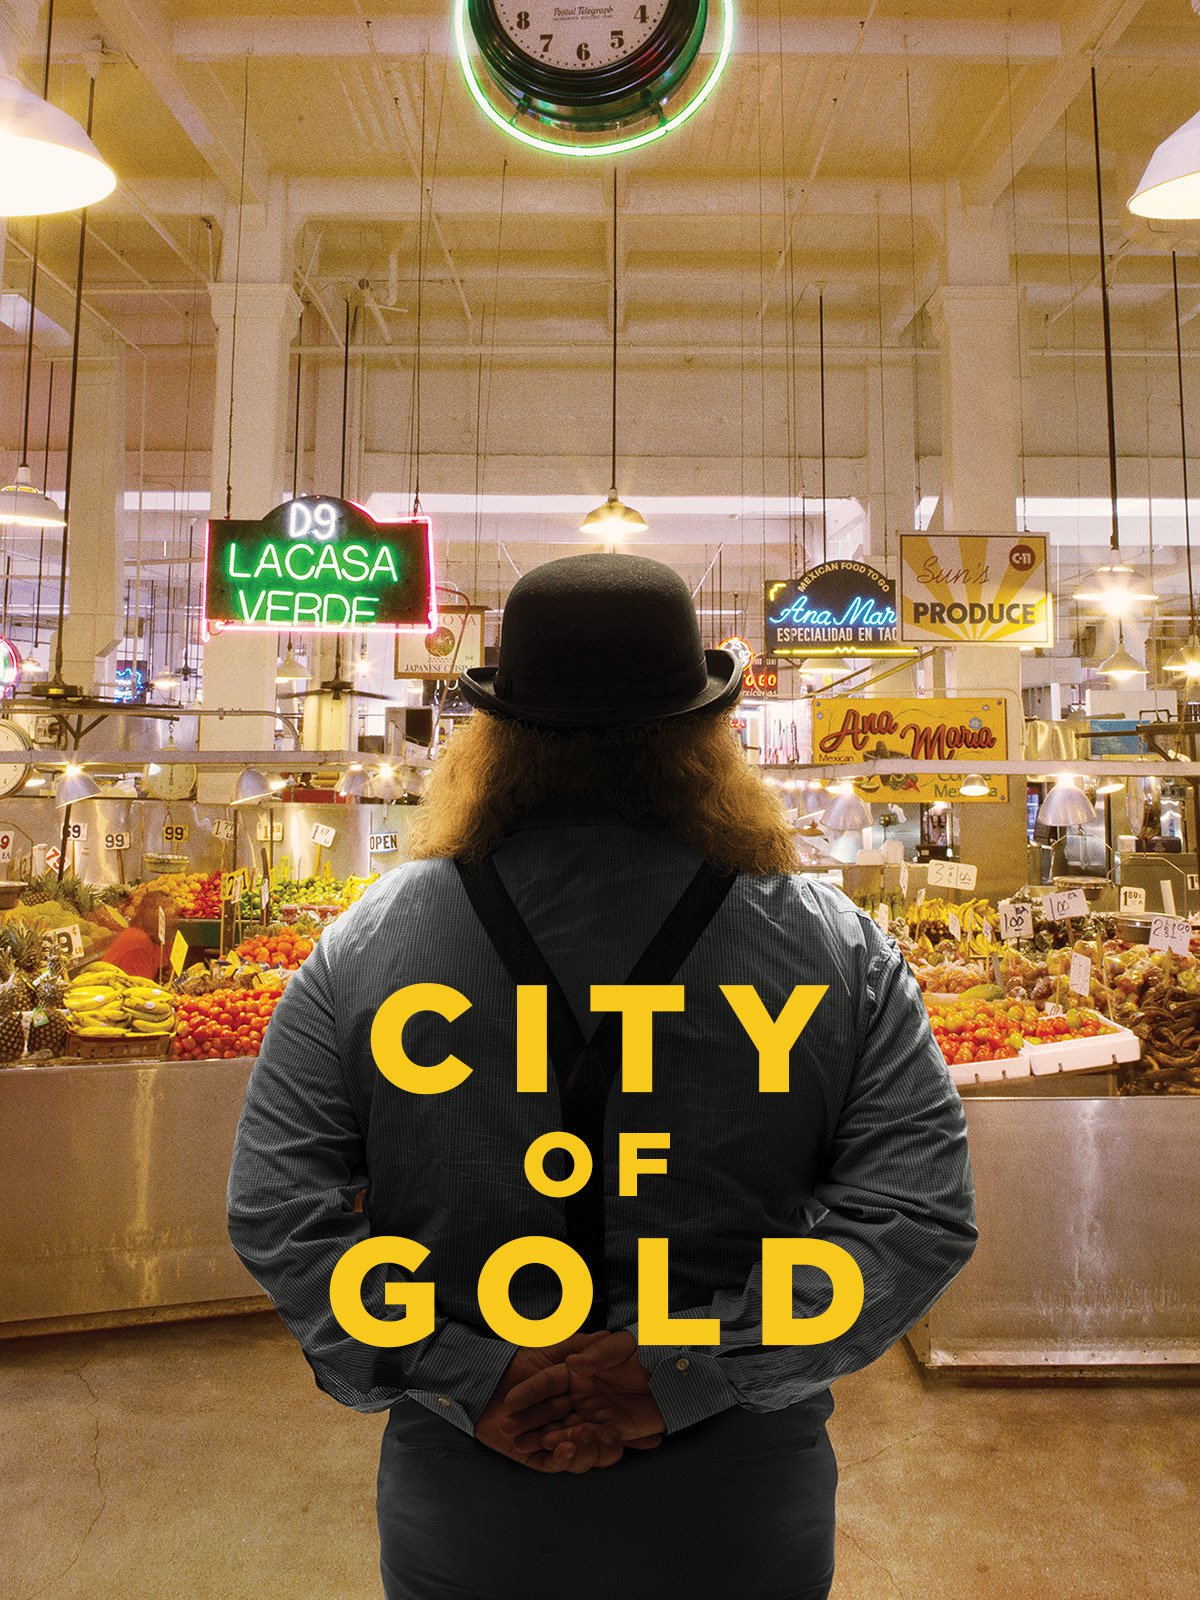 City of Gold by